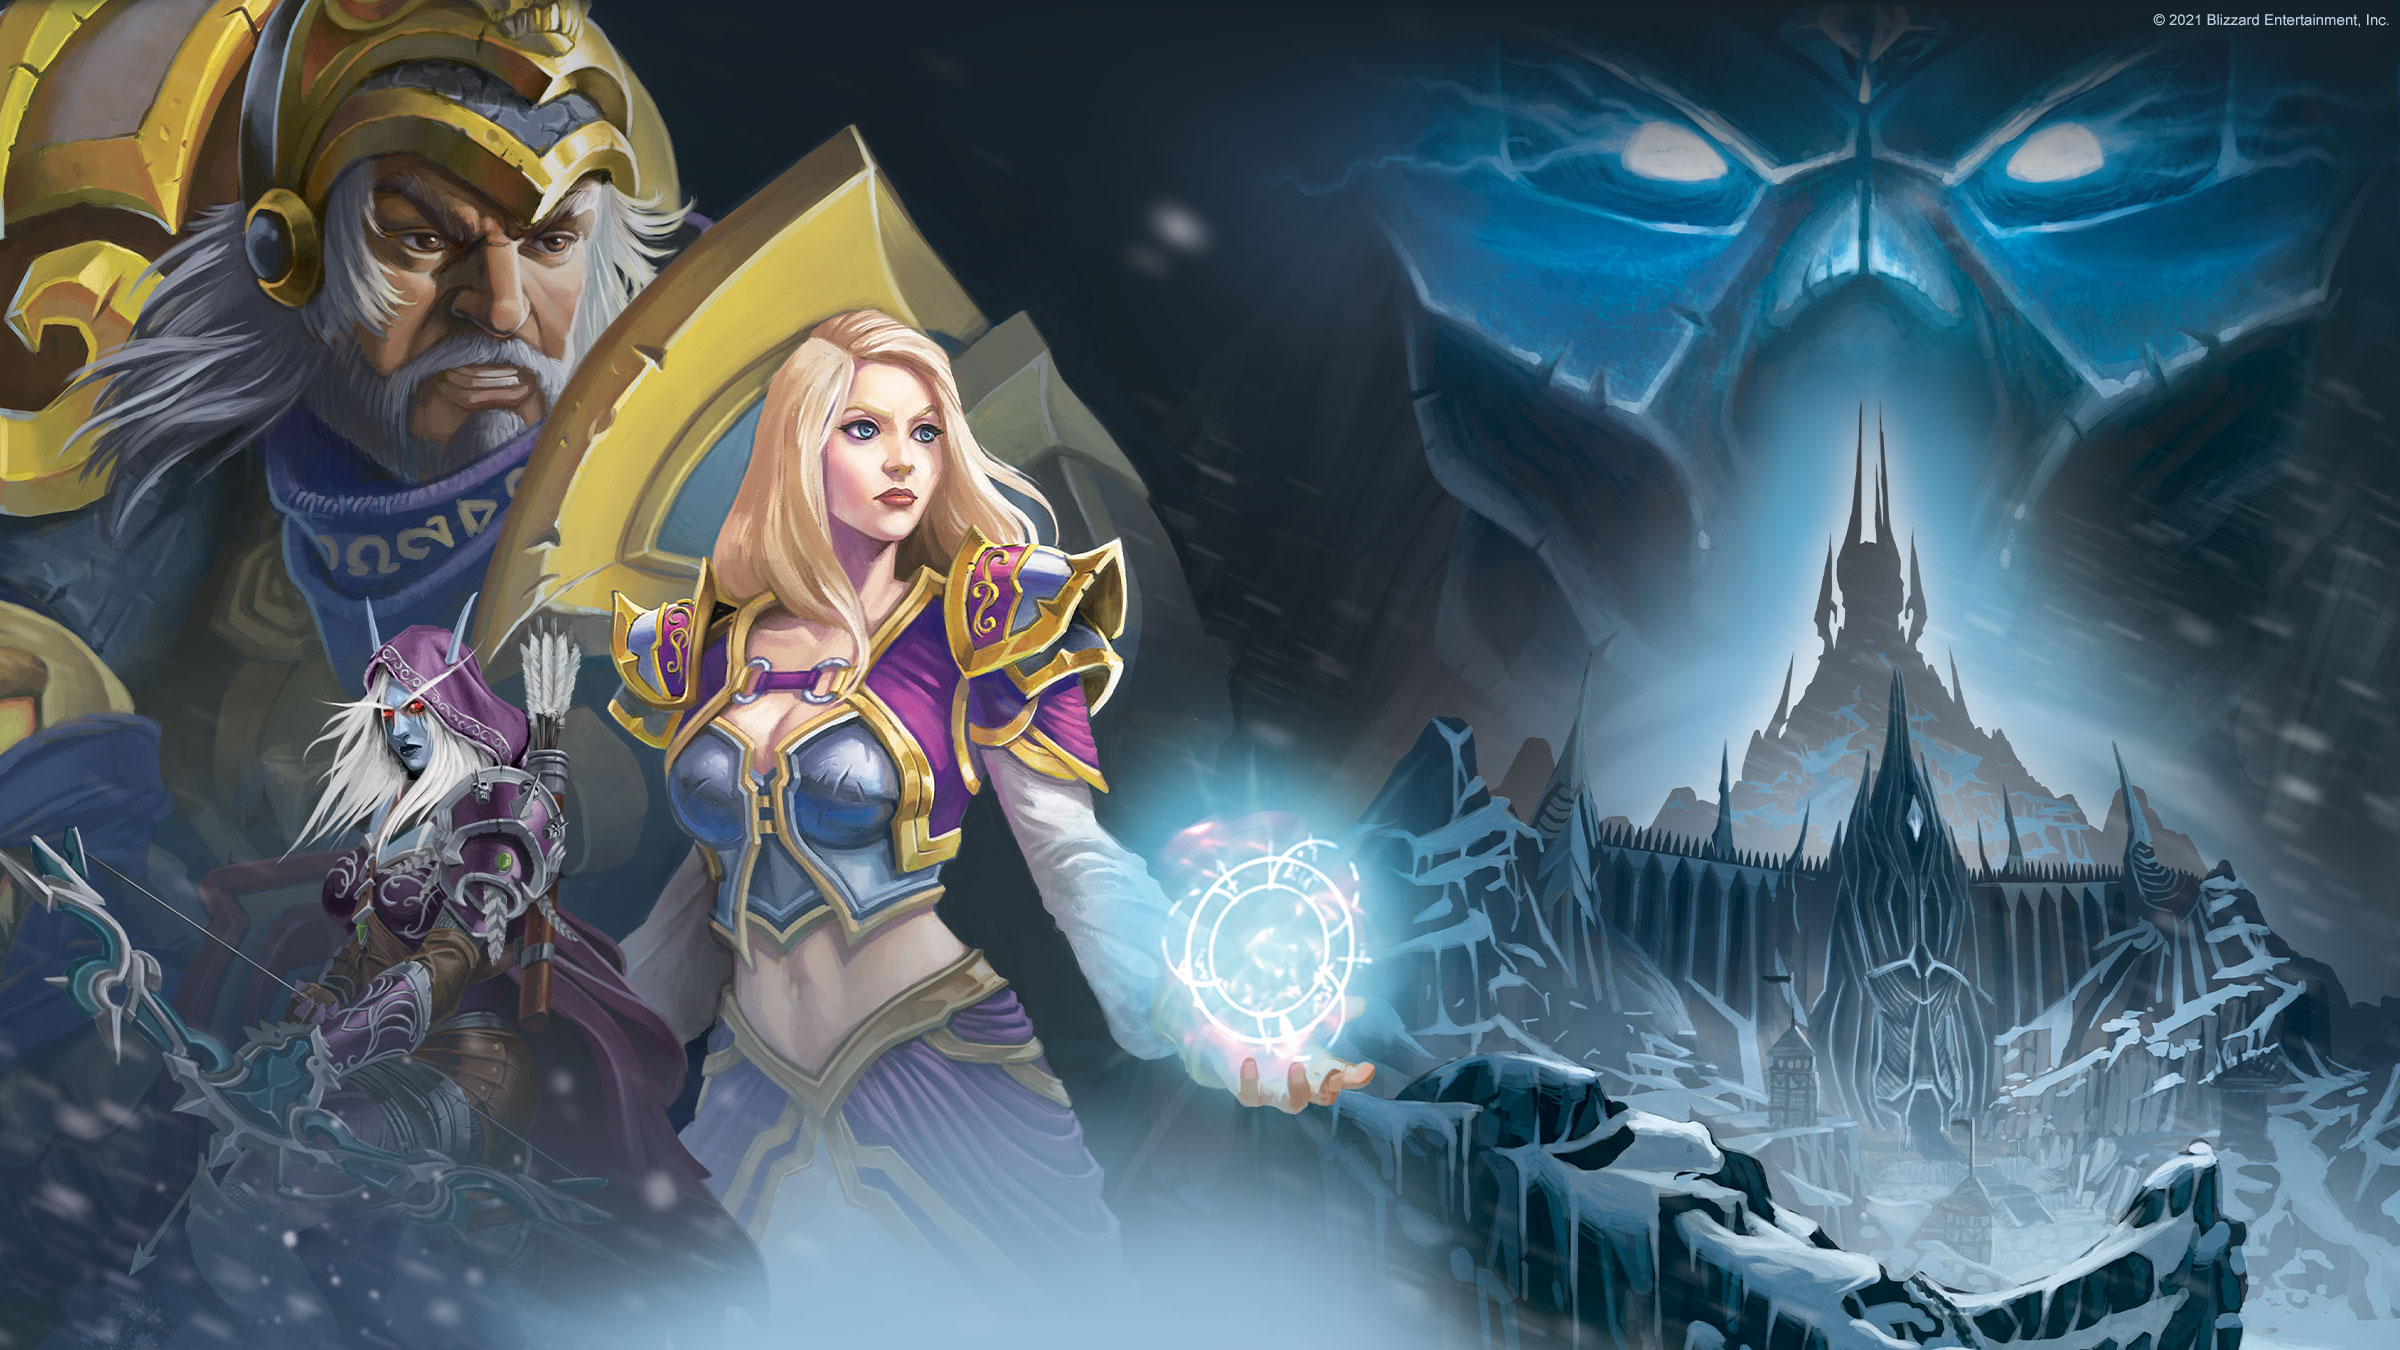 Coming This Fall: World of Warcraft: Wrath of the Lich King–A Pandemic System Board Game